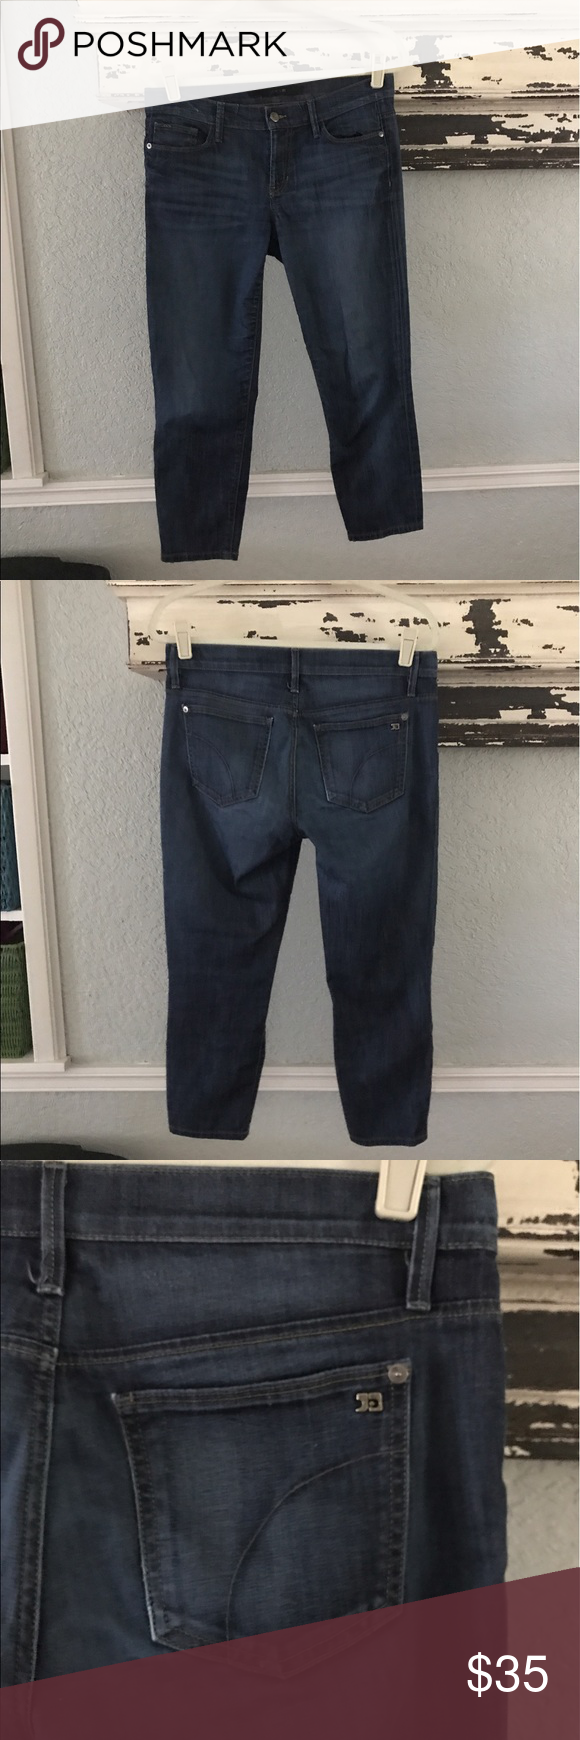 Joes jeans skinny Jackie Capri Good preowned condition. Superrrr soft and lightweight. It's supima cotton. Perfect for summer Joe's Jeans Jeans